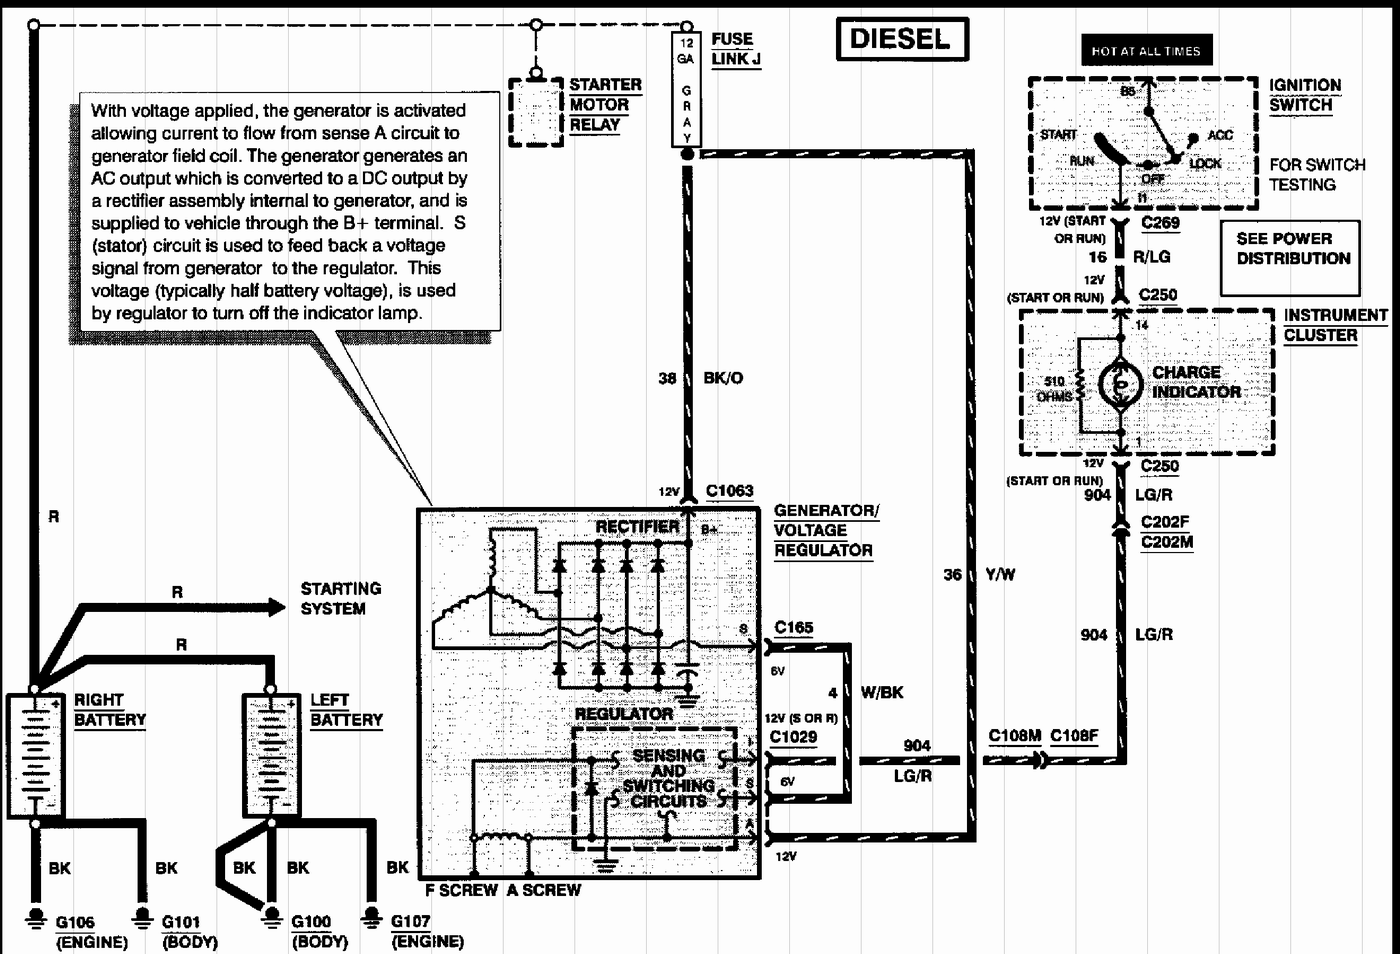 i need a wiring diagram for a 97 f350 7.3 powerstroke with ... 96 ford stereo wiring diagram